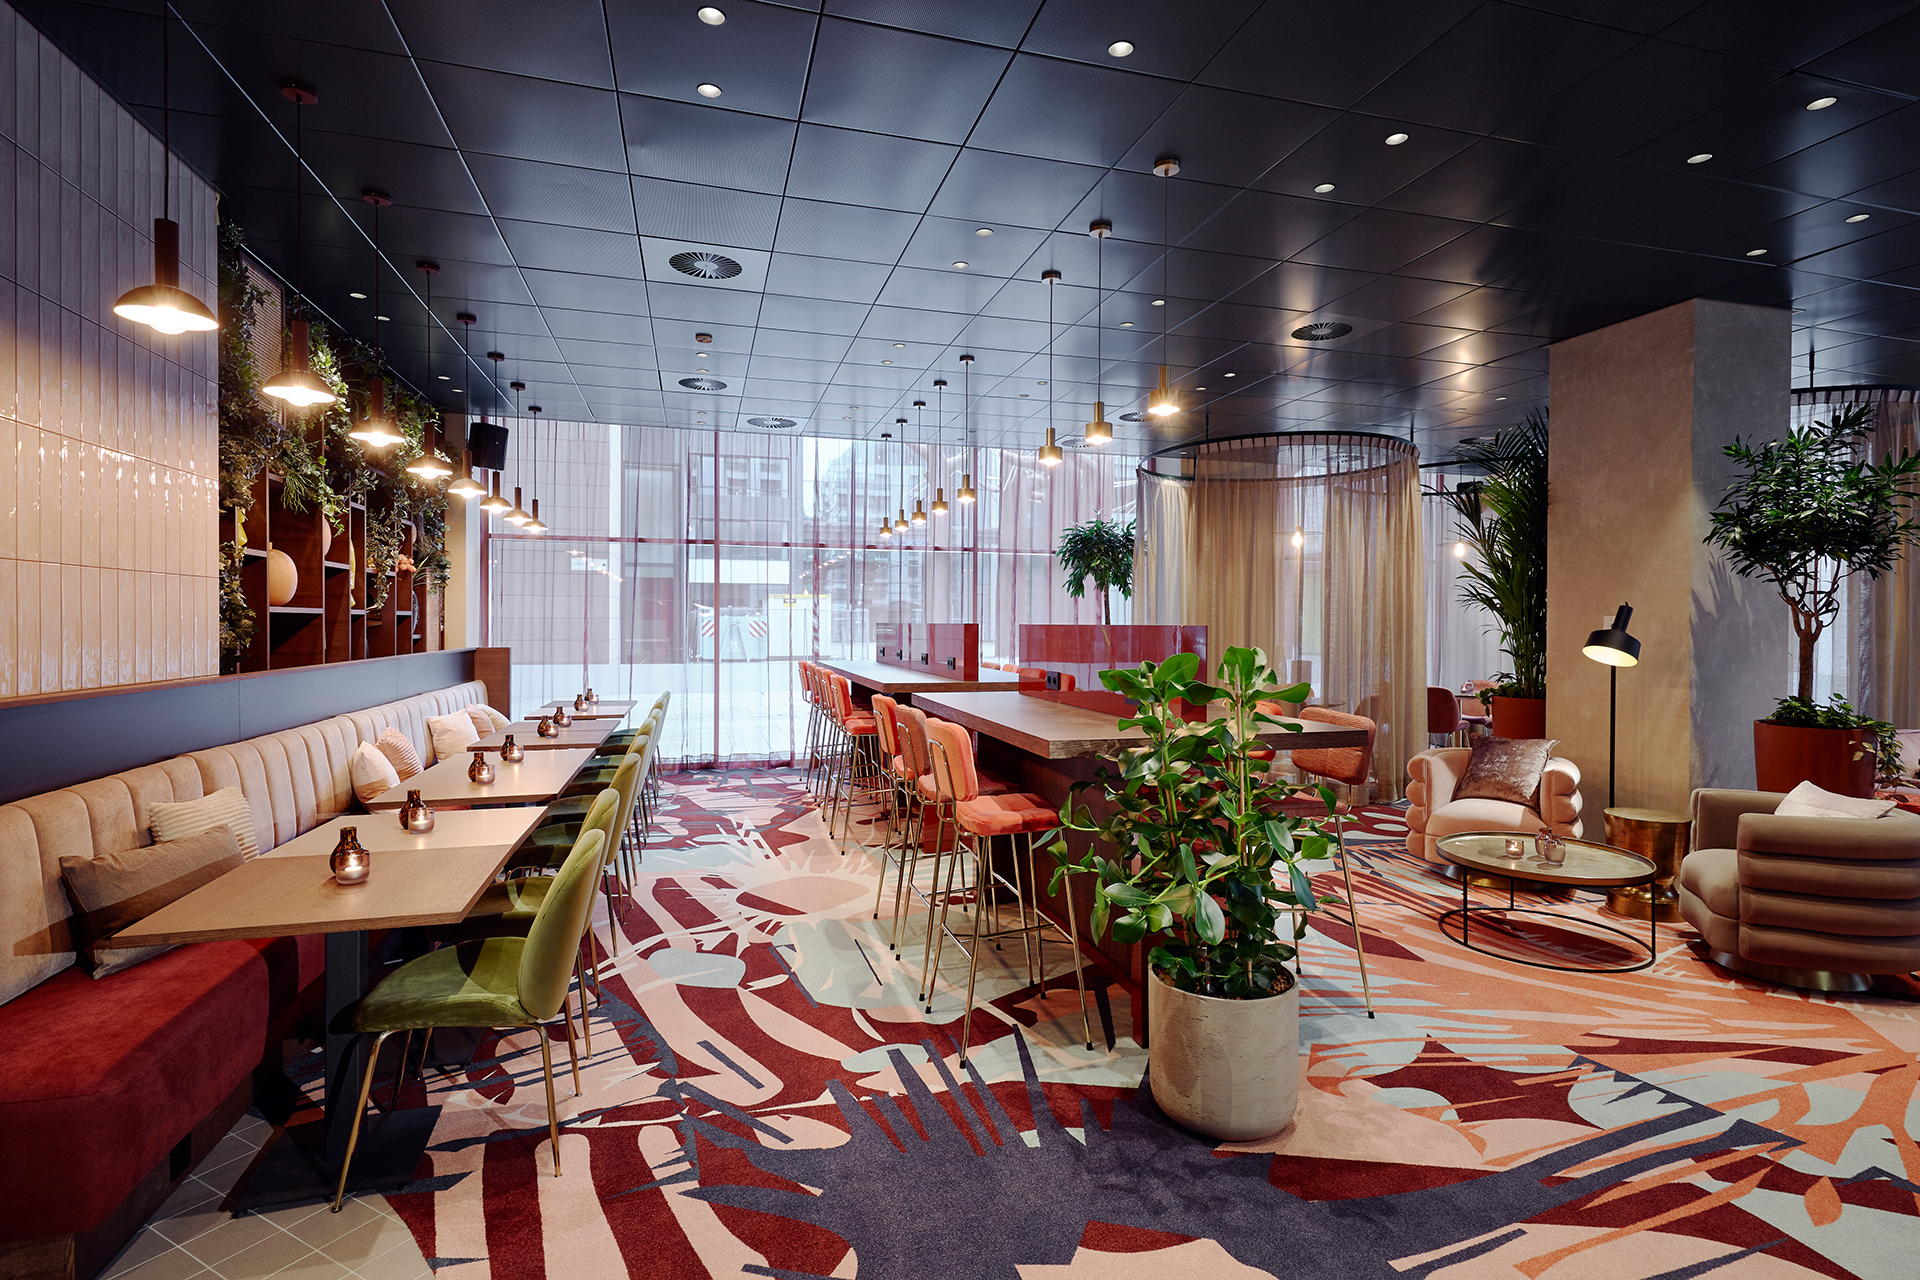 lindner-wtc-hotel-city-lounge-antwerp thumbnail